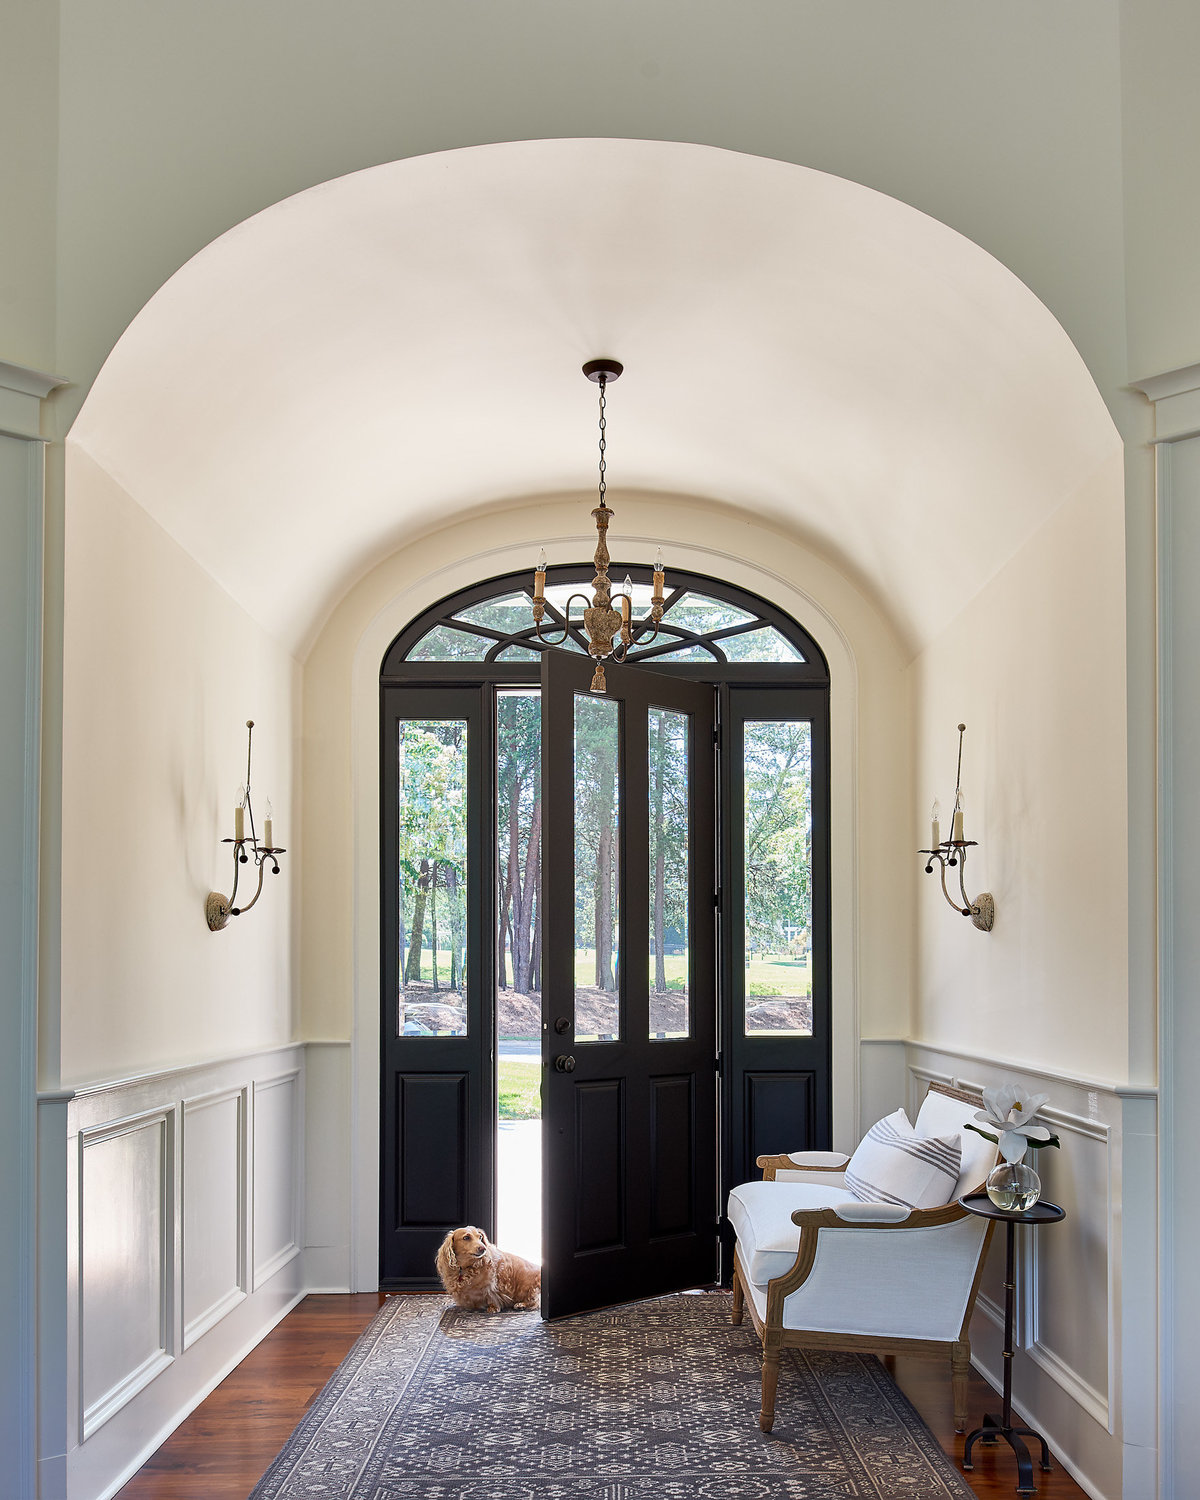 Interior Design Firms Charlotte Nc.Artistic Interiors Design Lake Norman Interior Design